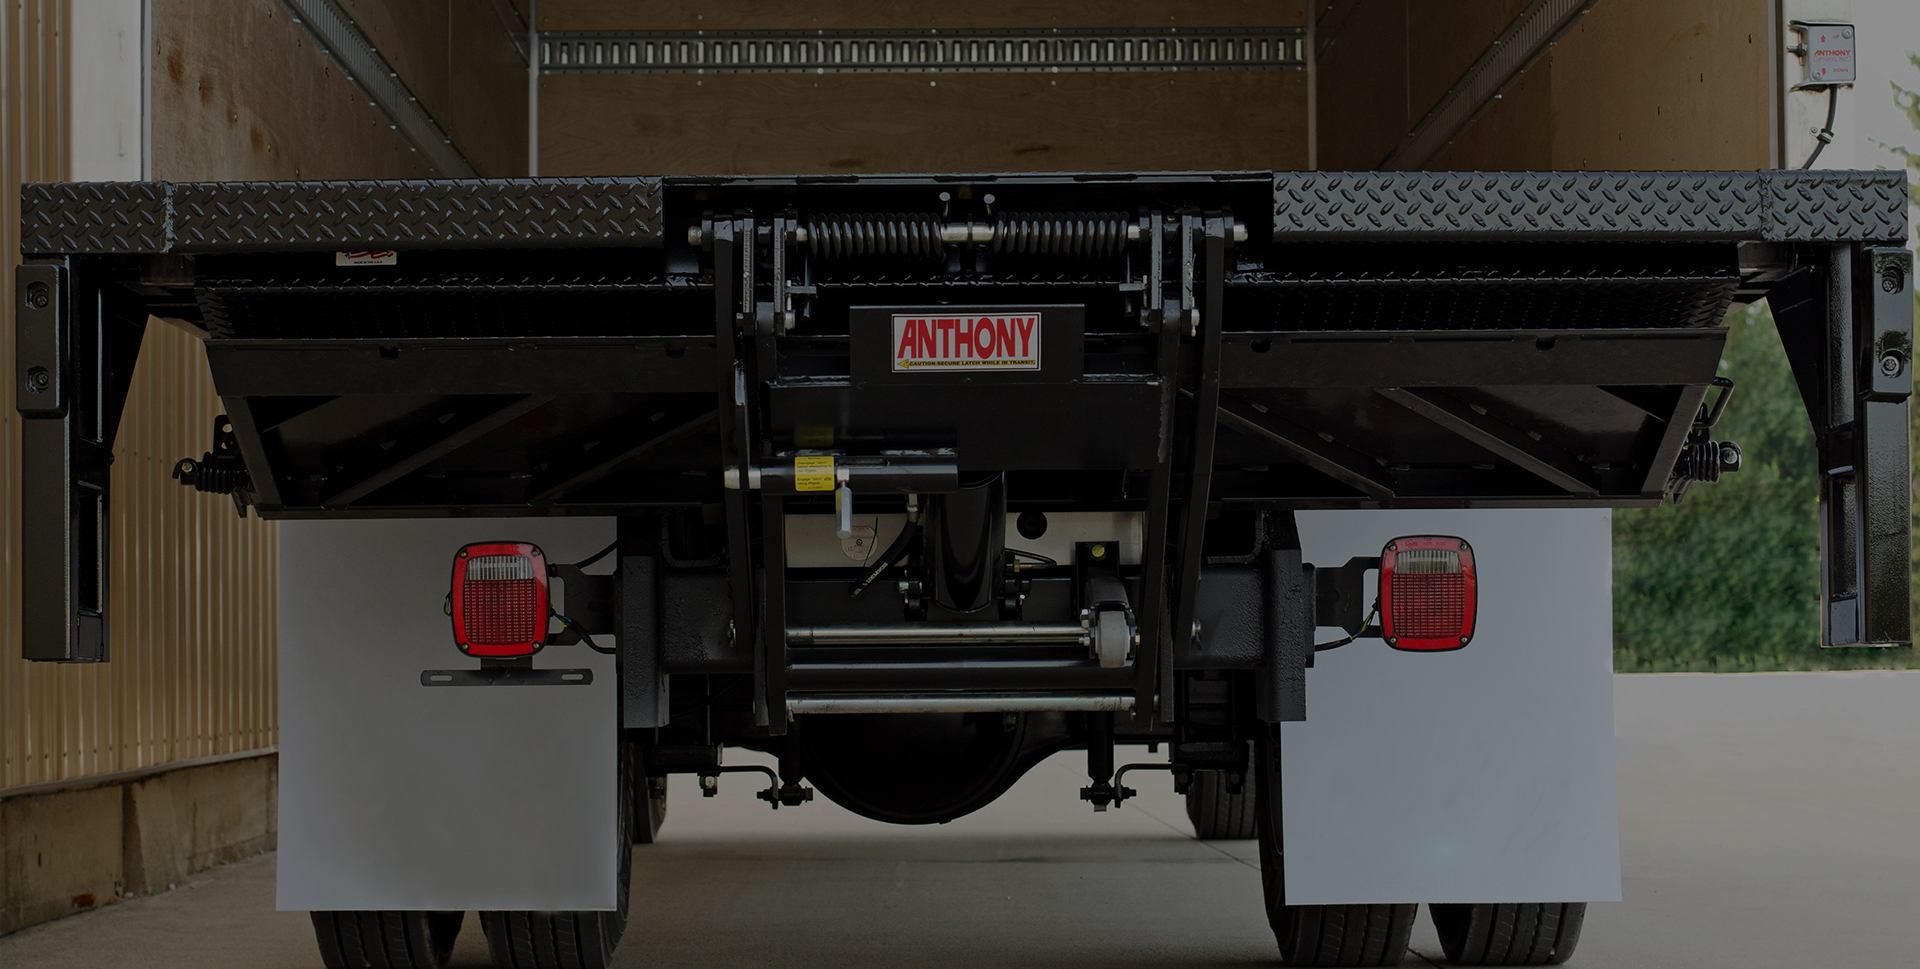 rearview of a truck liftgate